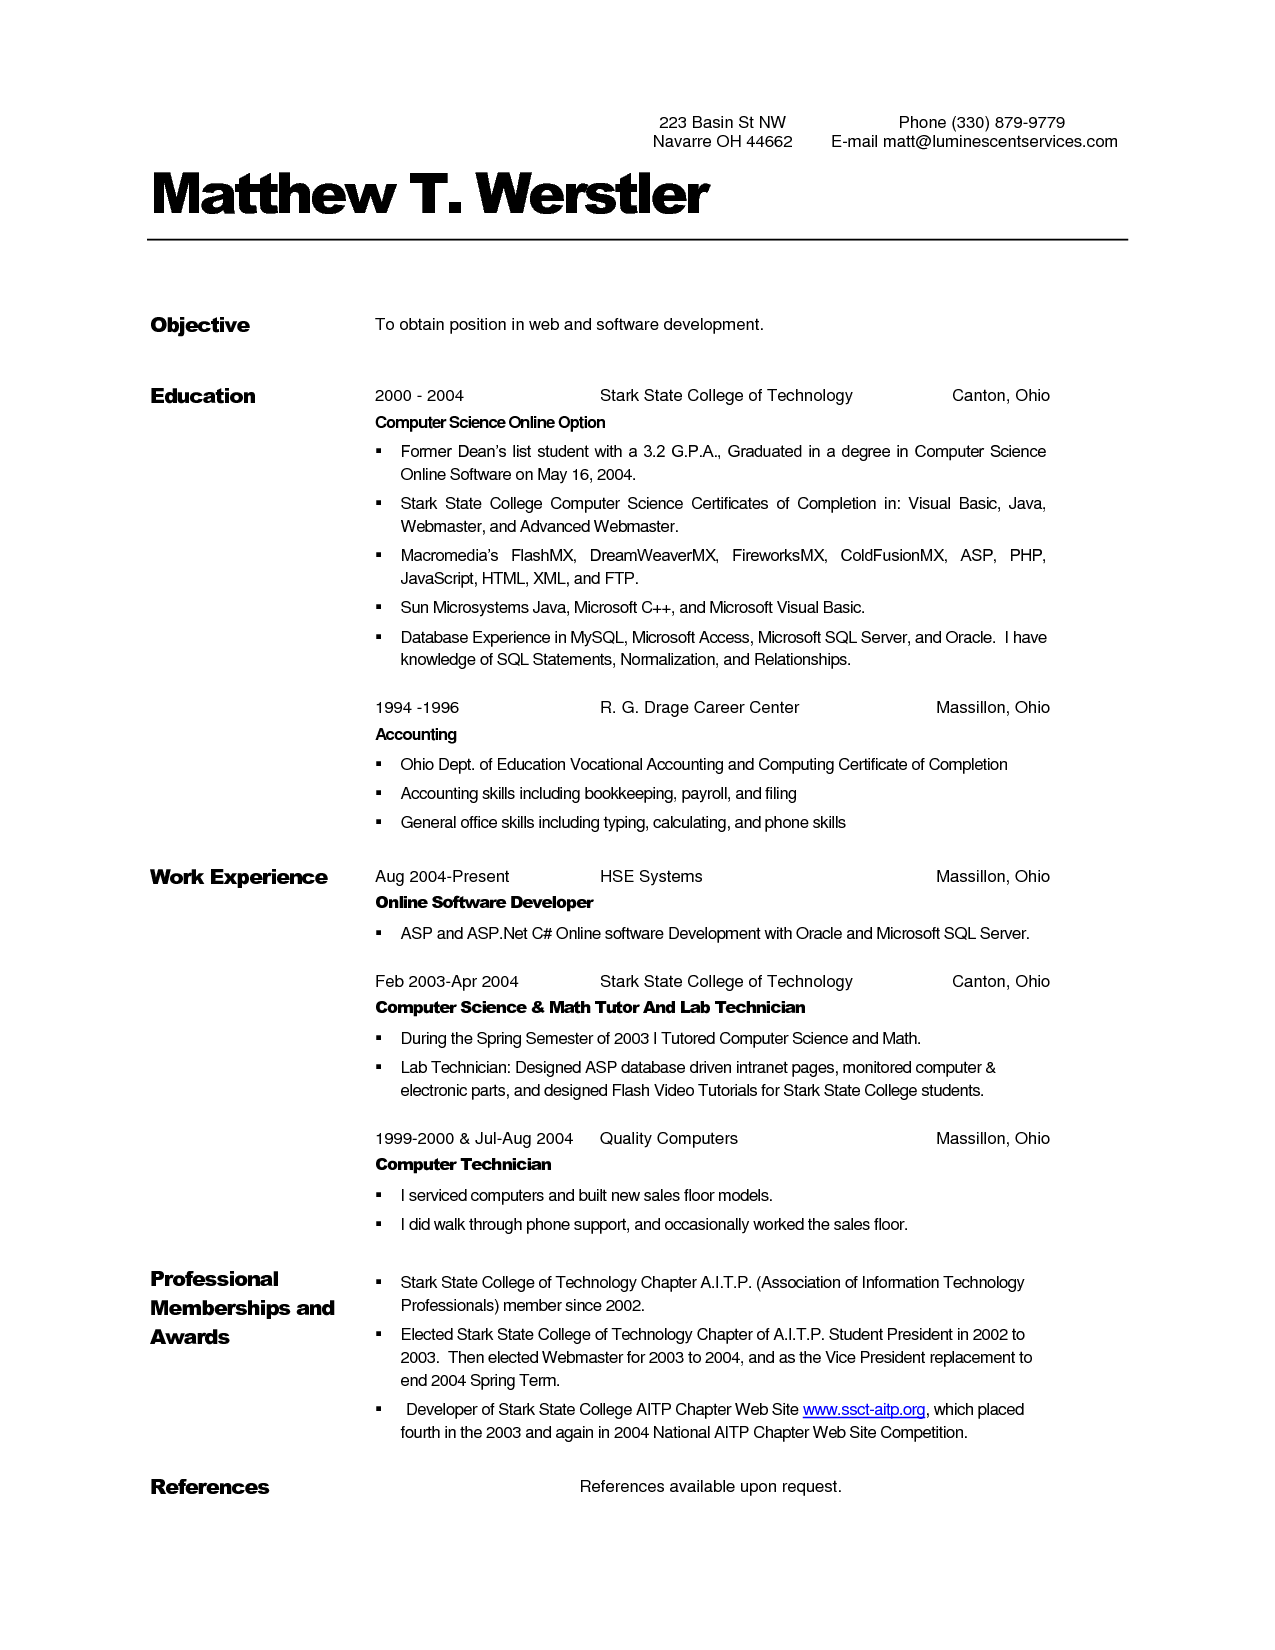 resume builder computer software resume samples writing resume builder computer software resume builder actuarial science resume template sample resume samples resume